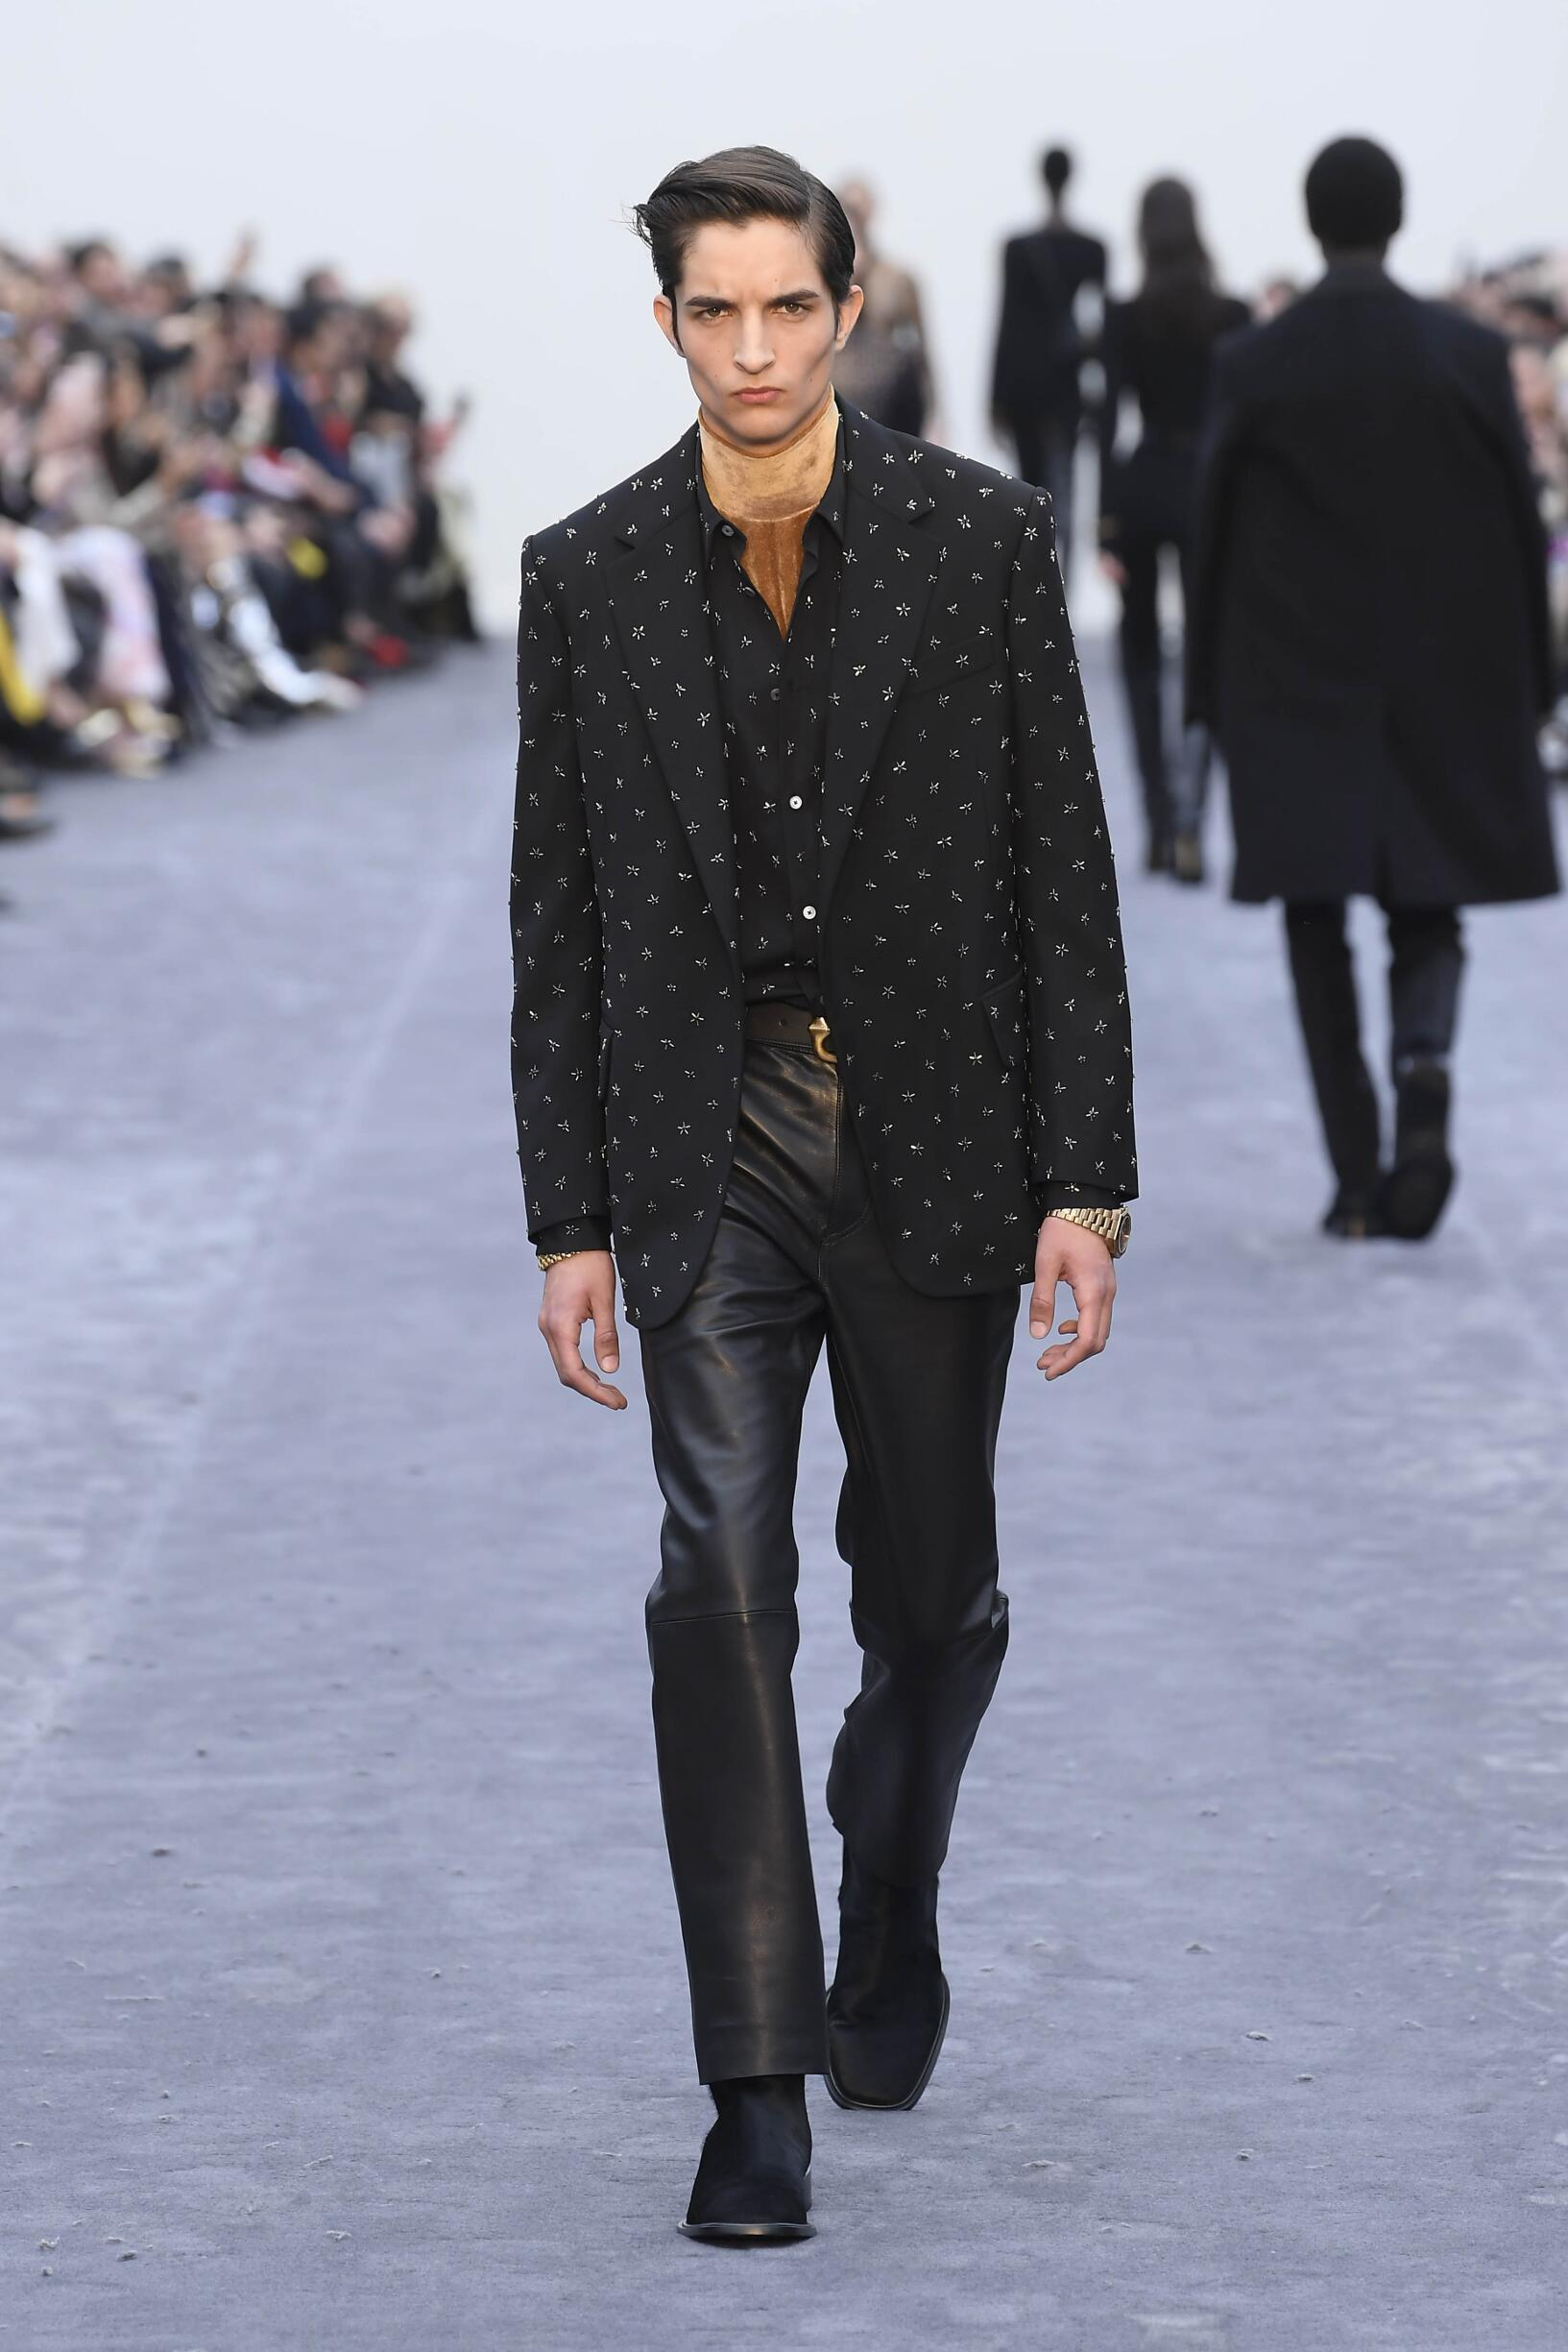 Roberto Cavalli Menswear Collection Trends